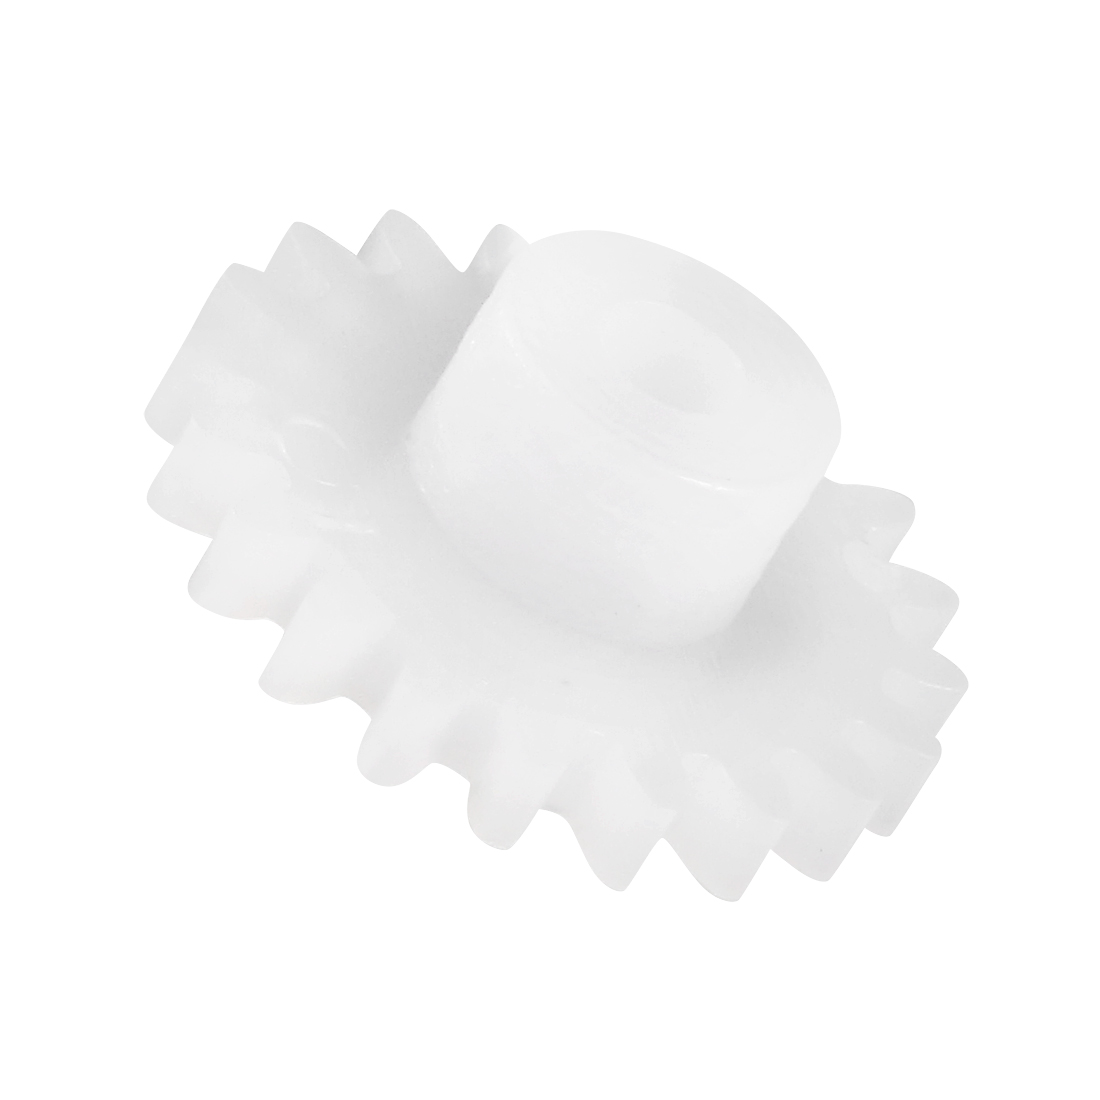 Uxcell 30Pcs 202A Plastic Gear Toy Accessories With 20 Teeth For DIY Car Robot Motor